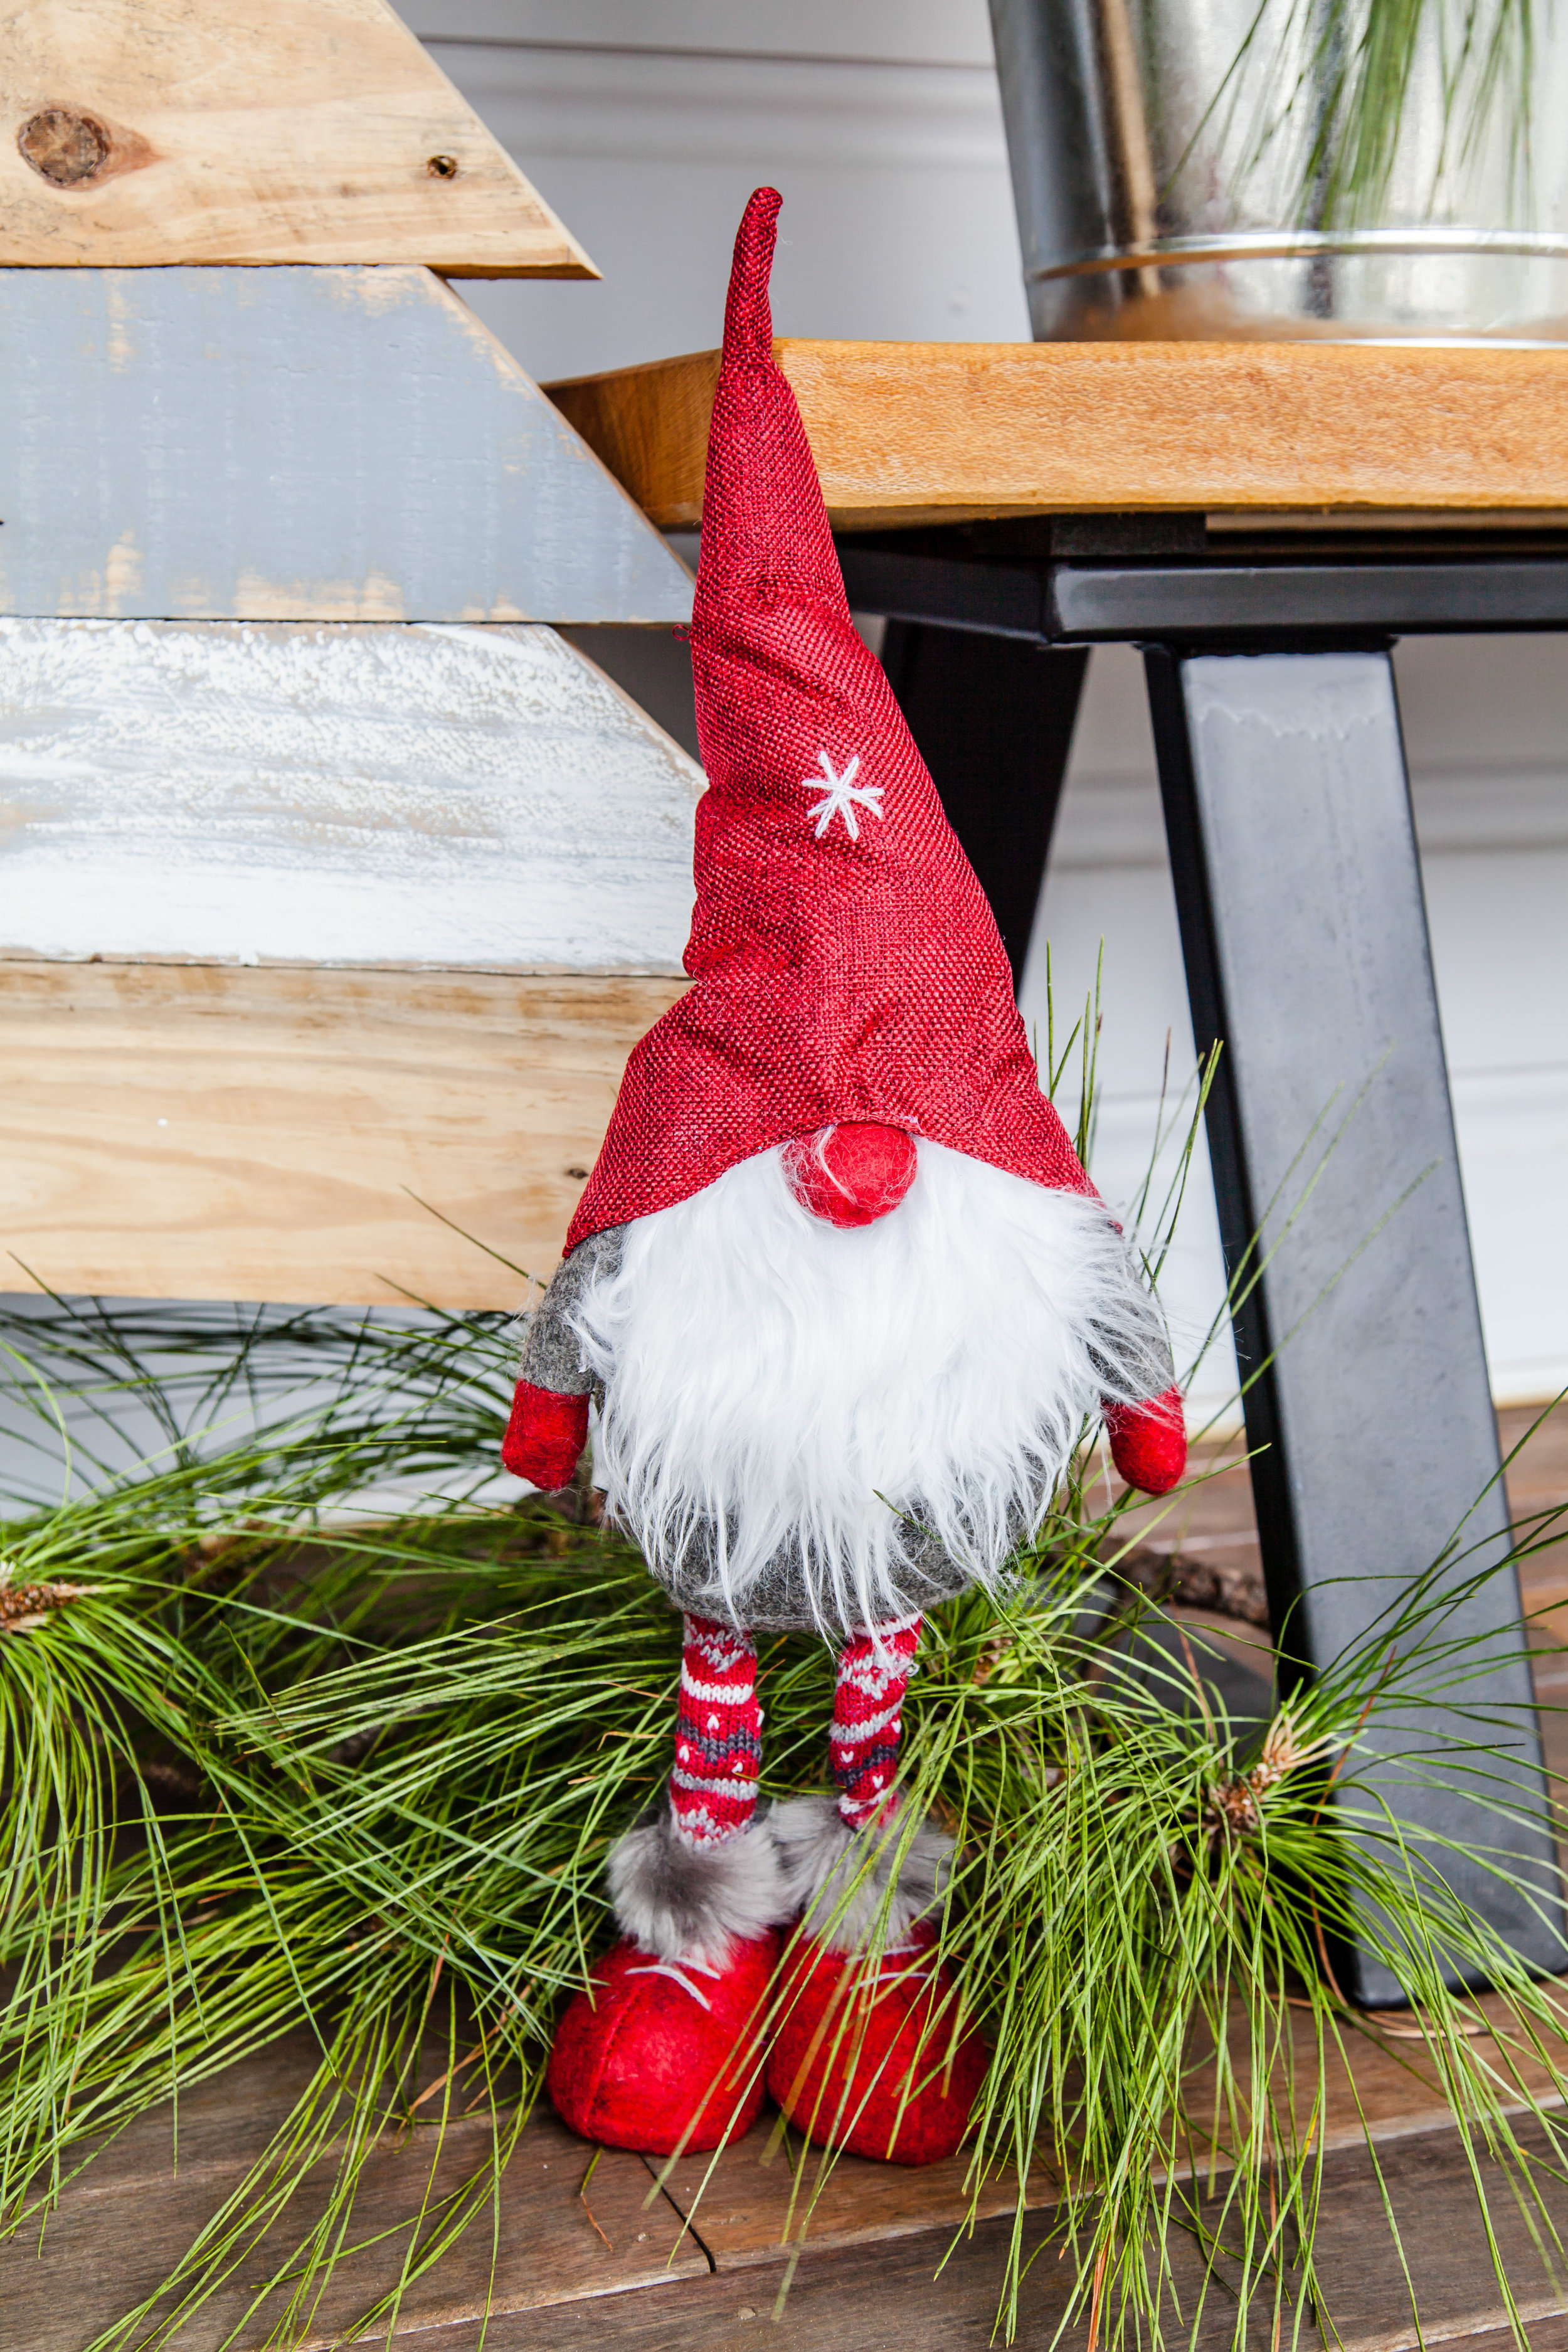 Rustic Pallet Christmas Tree + Video | The Whimsical Wife